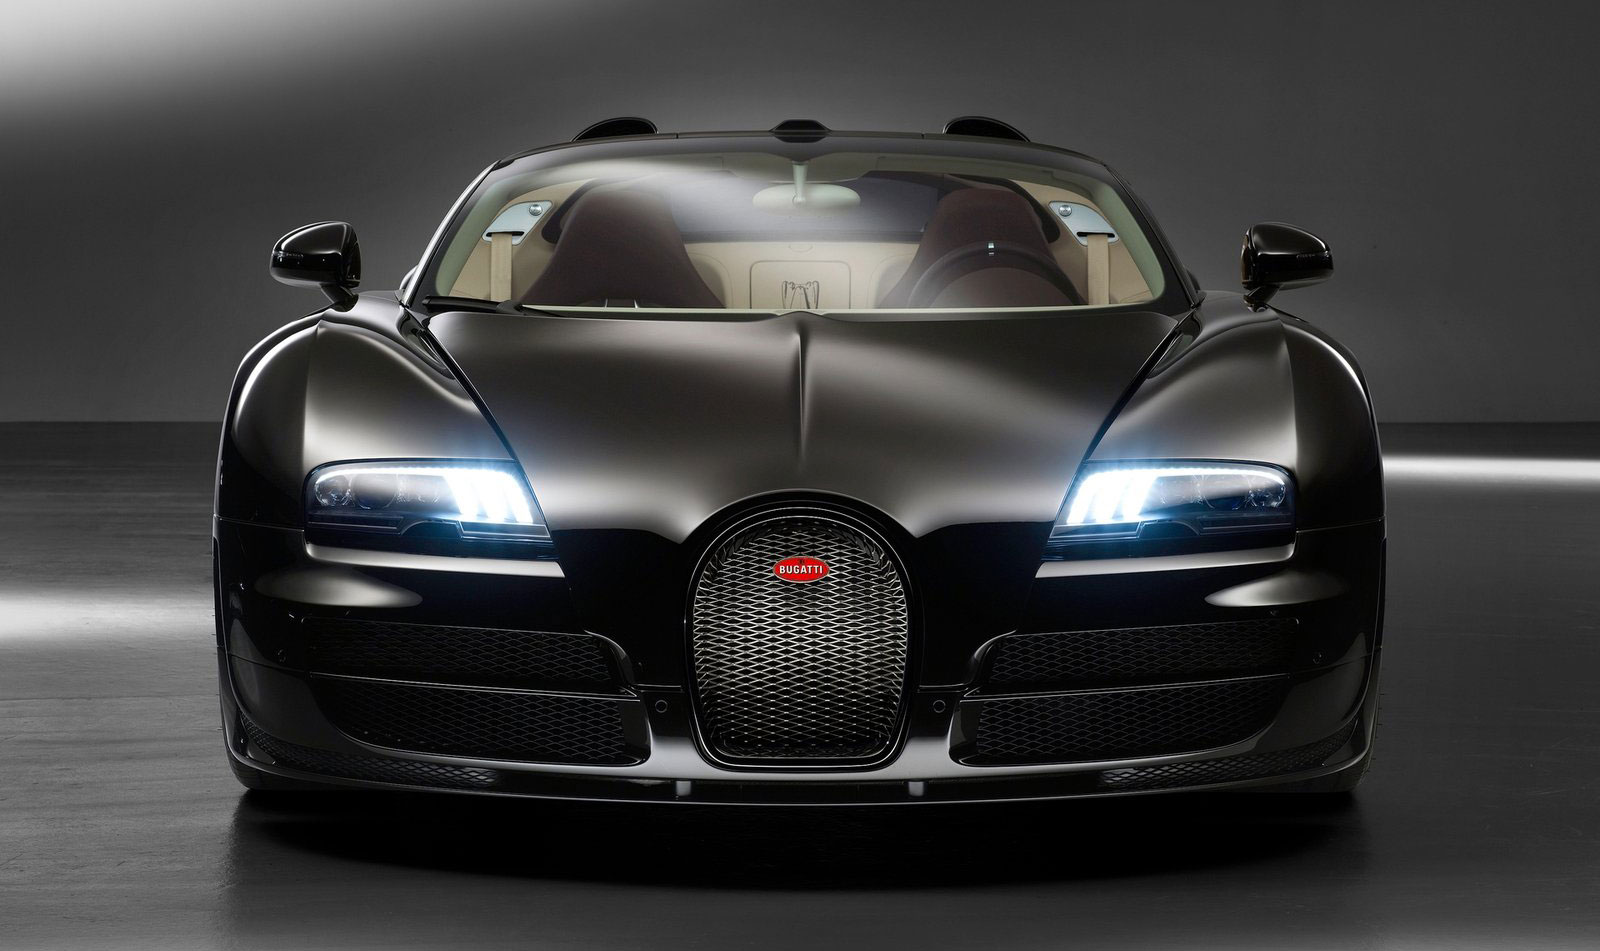 bugatti veyron jean bugatti only 3 units rm9 9 mil. Black Bedroom Furniture Sets. Home Design Ideas